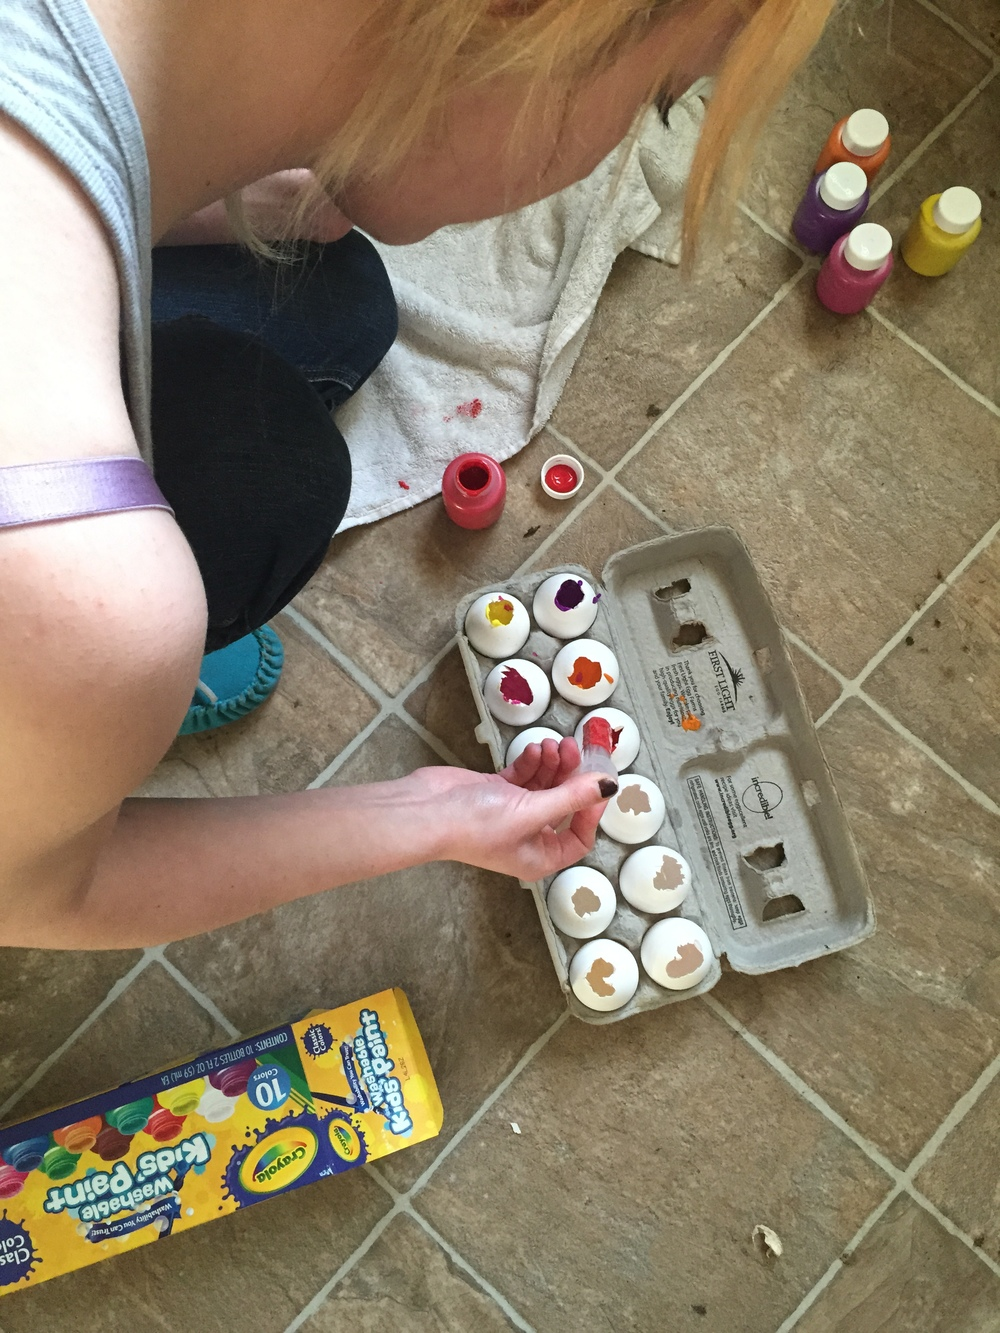 Our PInterest girl, Chels, filling her egg with paint to create a beautiful and fun piece of artwork. Check out the final outcome at Parties by Lt.com